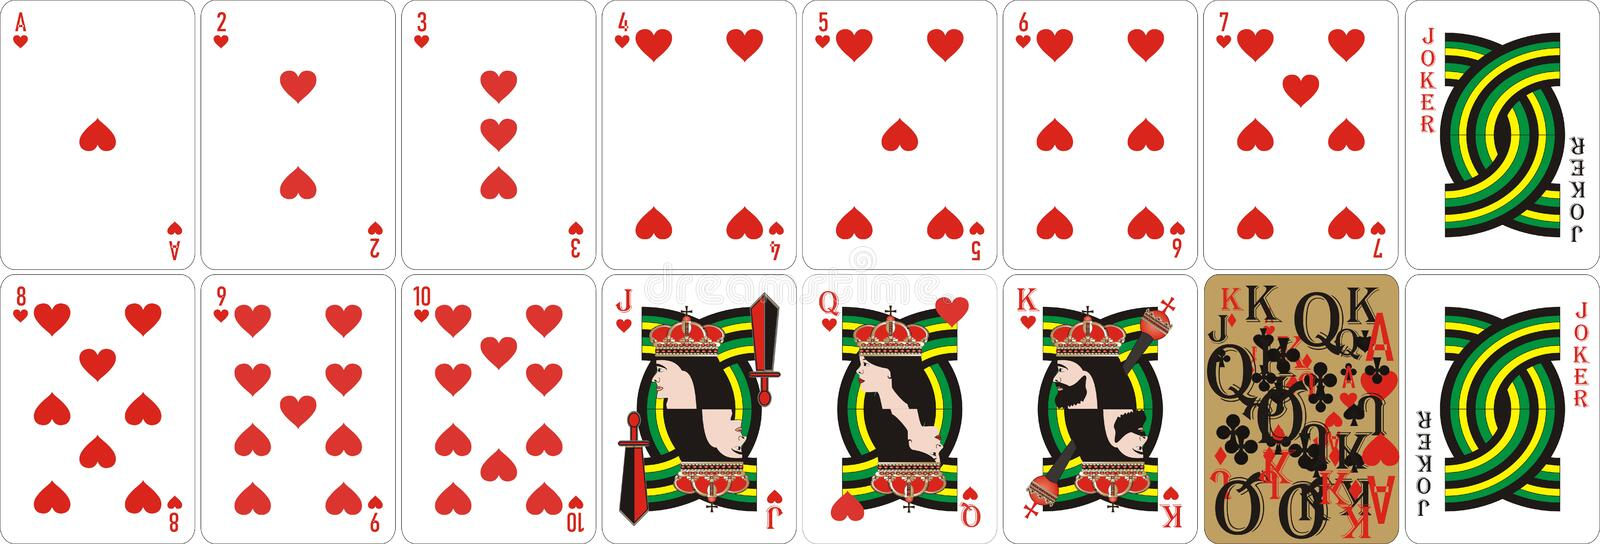 Playing cards for rummy and Cassino. Cards for playing for fun and gambling.Suitable first of all for poker. Original design. Vector file available vector illustration